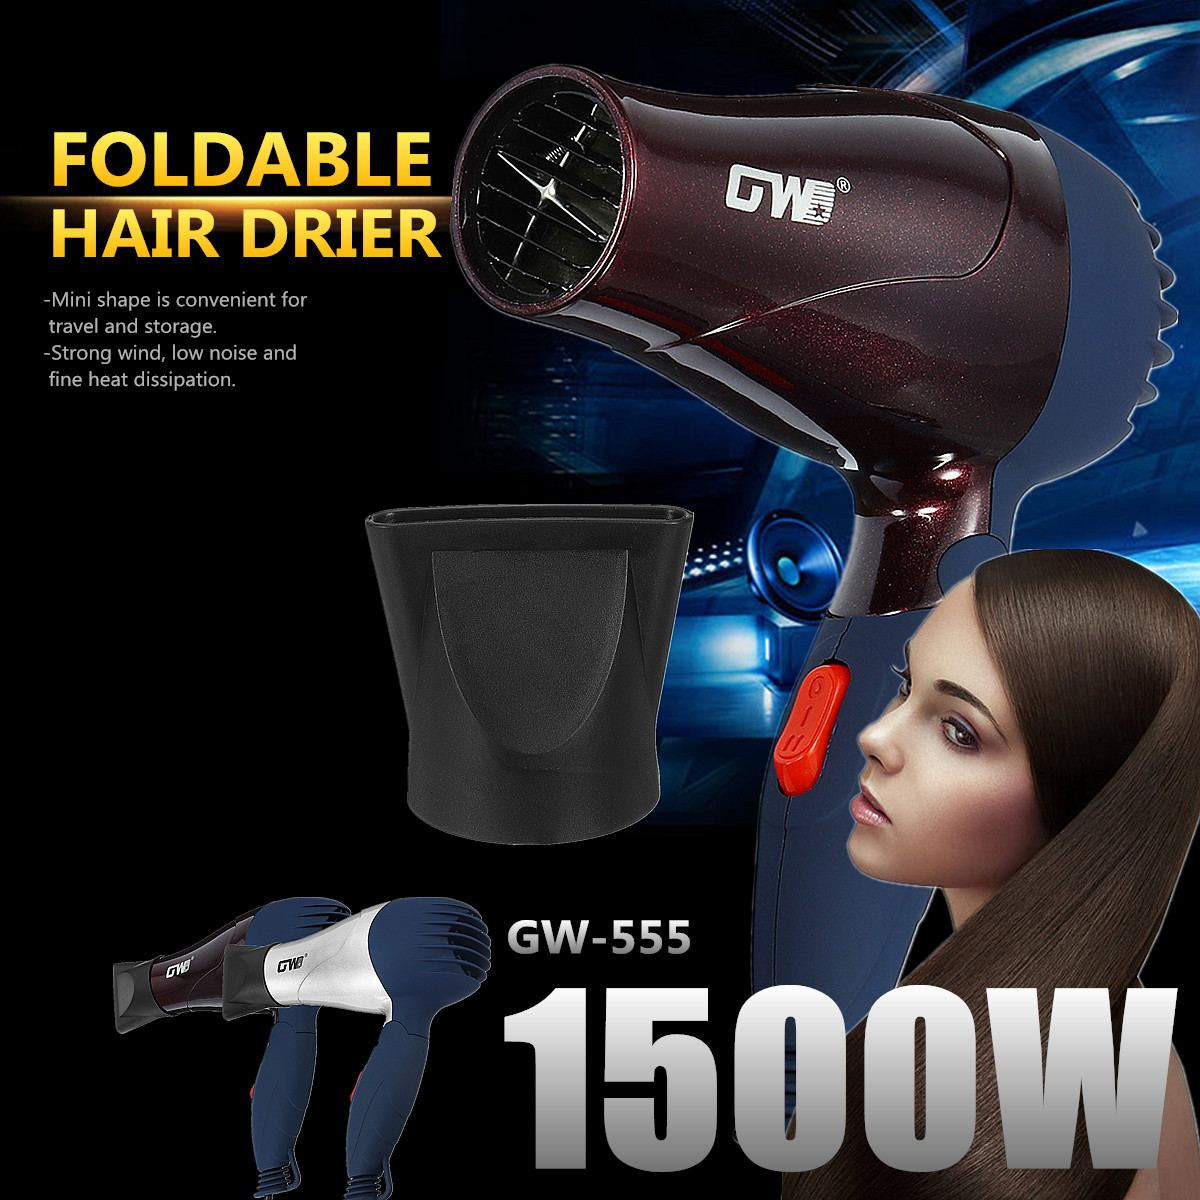 220V 1500W Electric Household Foldable Hair Dryer Blower Styling Tool Traveller Strong Wind Low Noise Silver/Coffee Convenient220V 1500W Electric Household Foldable Hair Dryer Blower Styling Tool Traveller Strong Wind Low Noise Silver/Coffee Convenient